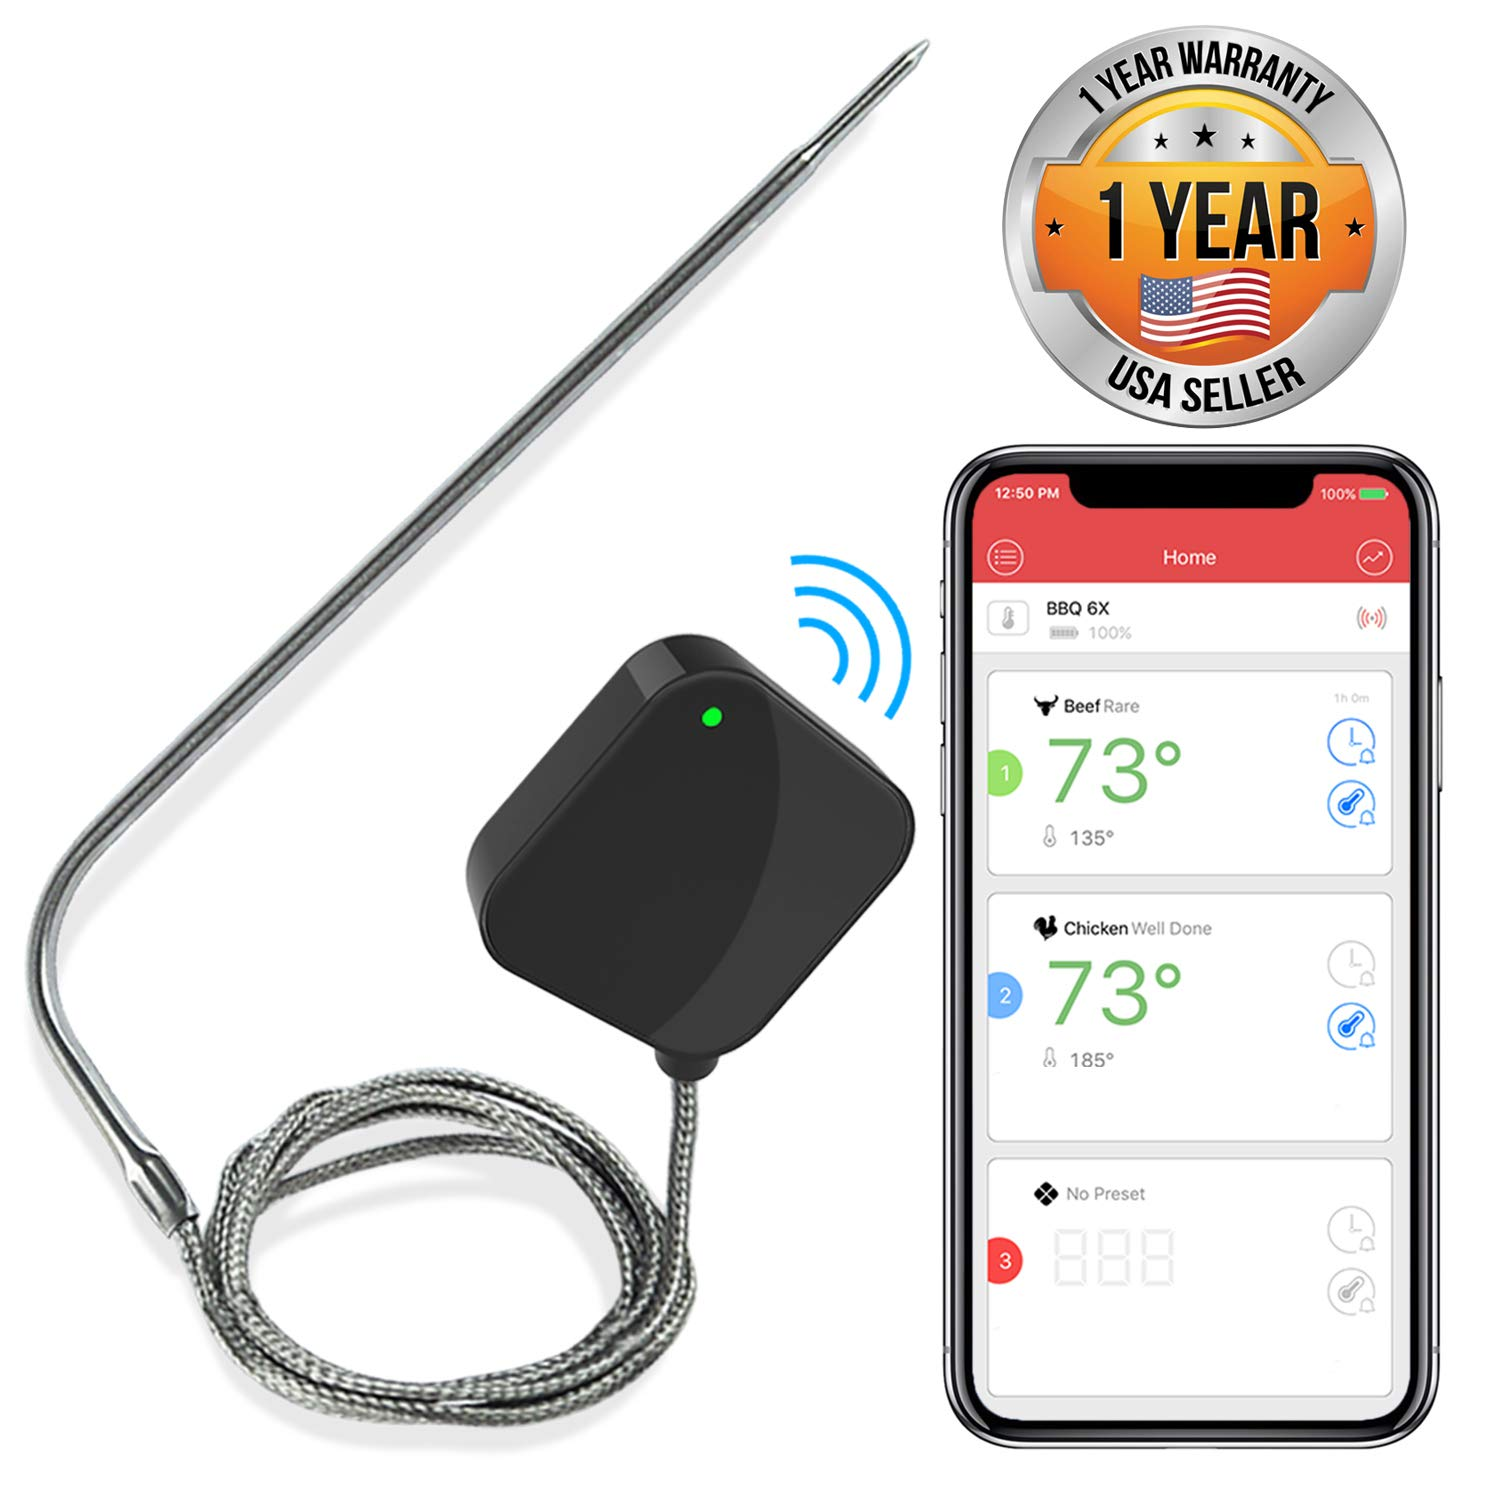 NutriChef Smart Bluetooth BBQ Thermometer - Upgraded Stainless Probe Safe to Leave in Grill, Outdoor Barbecue or Meat Smoker - Wireless Remote Alert iOS Android Phone WiFi App - PWIRBBQ40 by Nutrichef